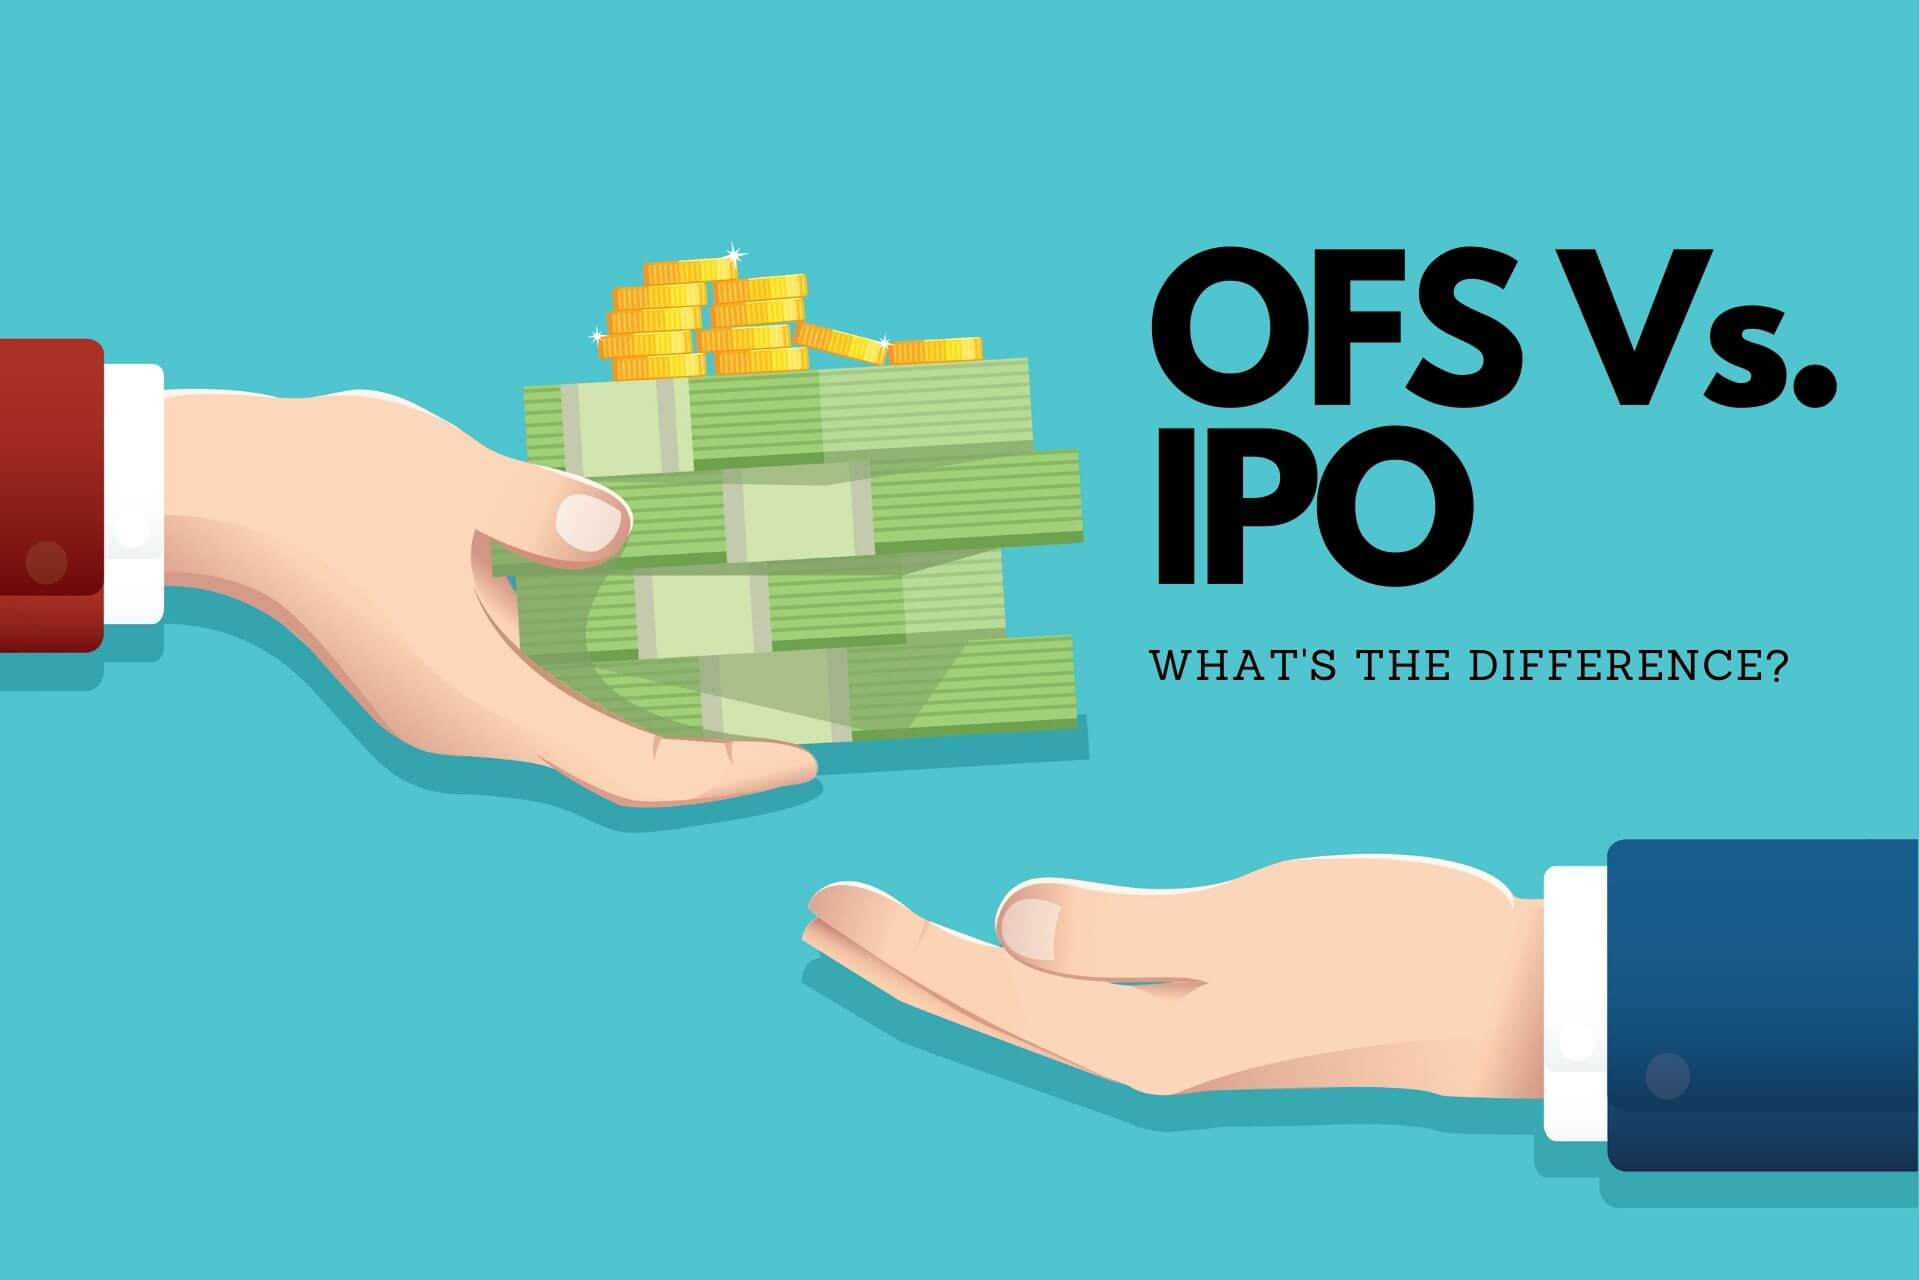 Offer for Sale (OFS) vs IPO - What's the difference?